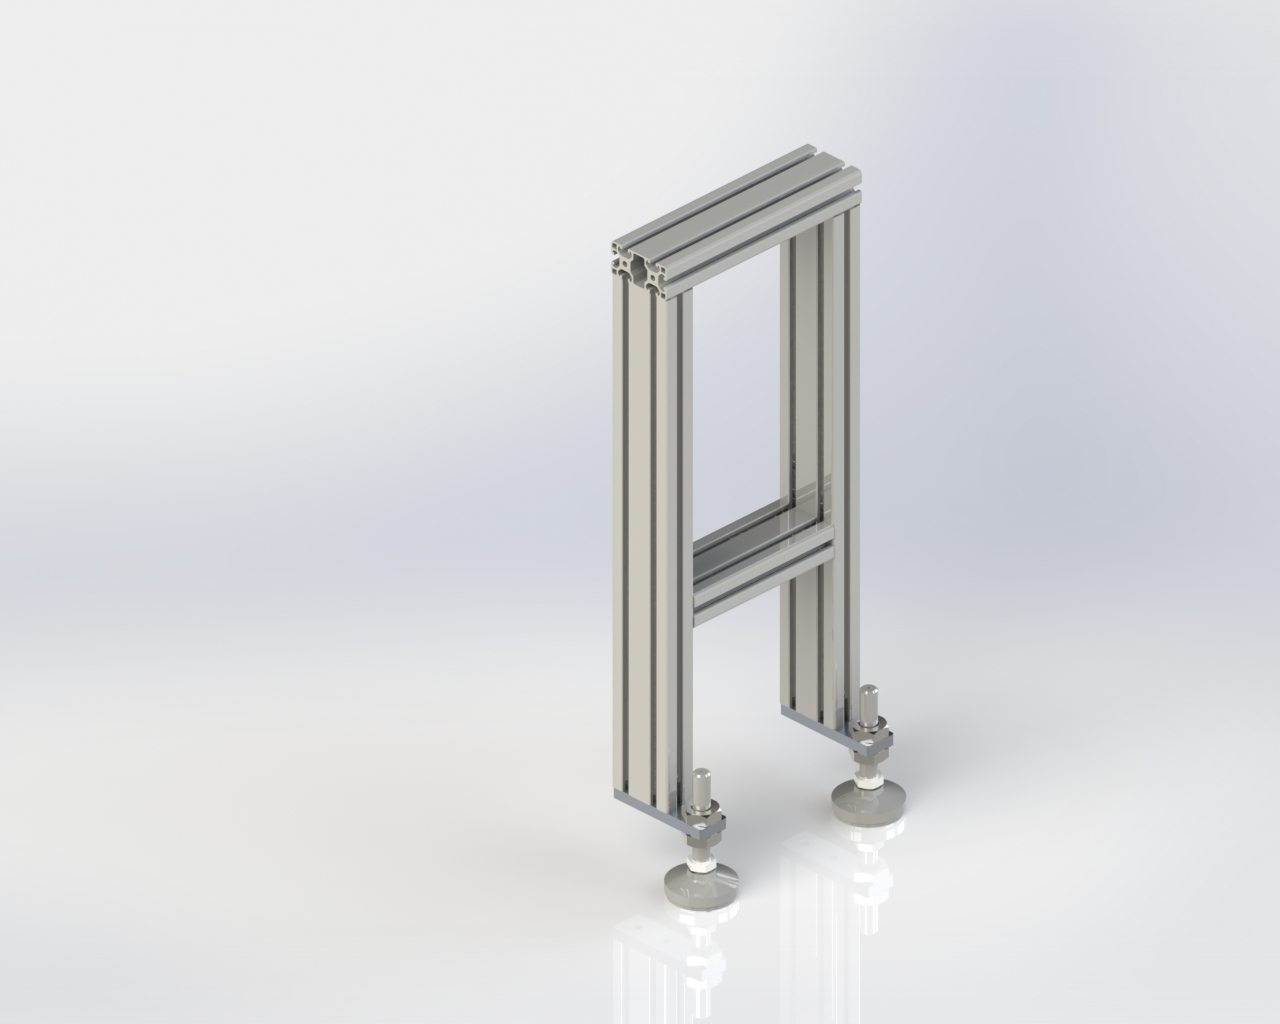 Model 55 Fixed Floor Stand